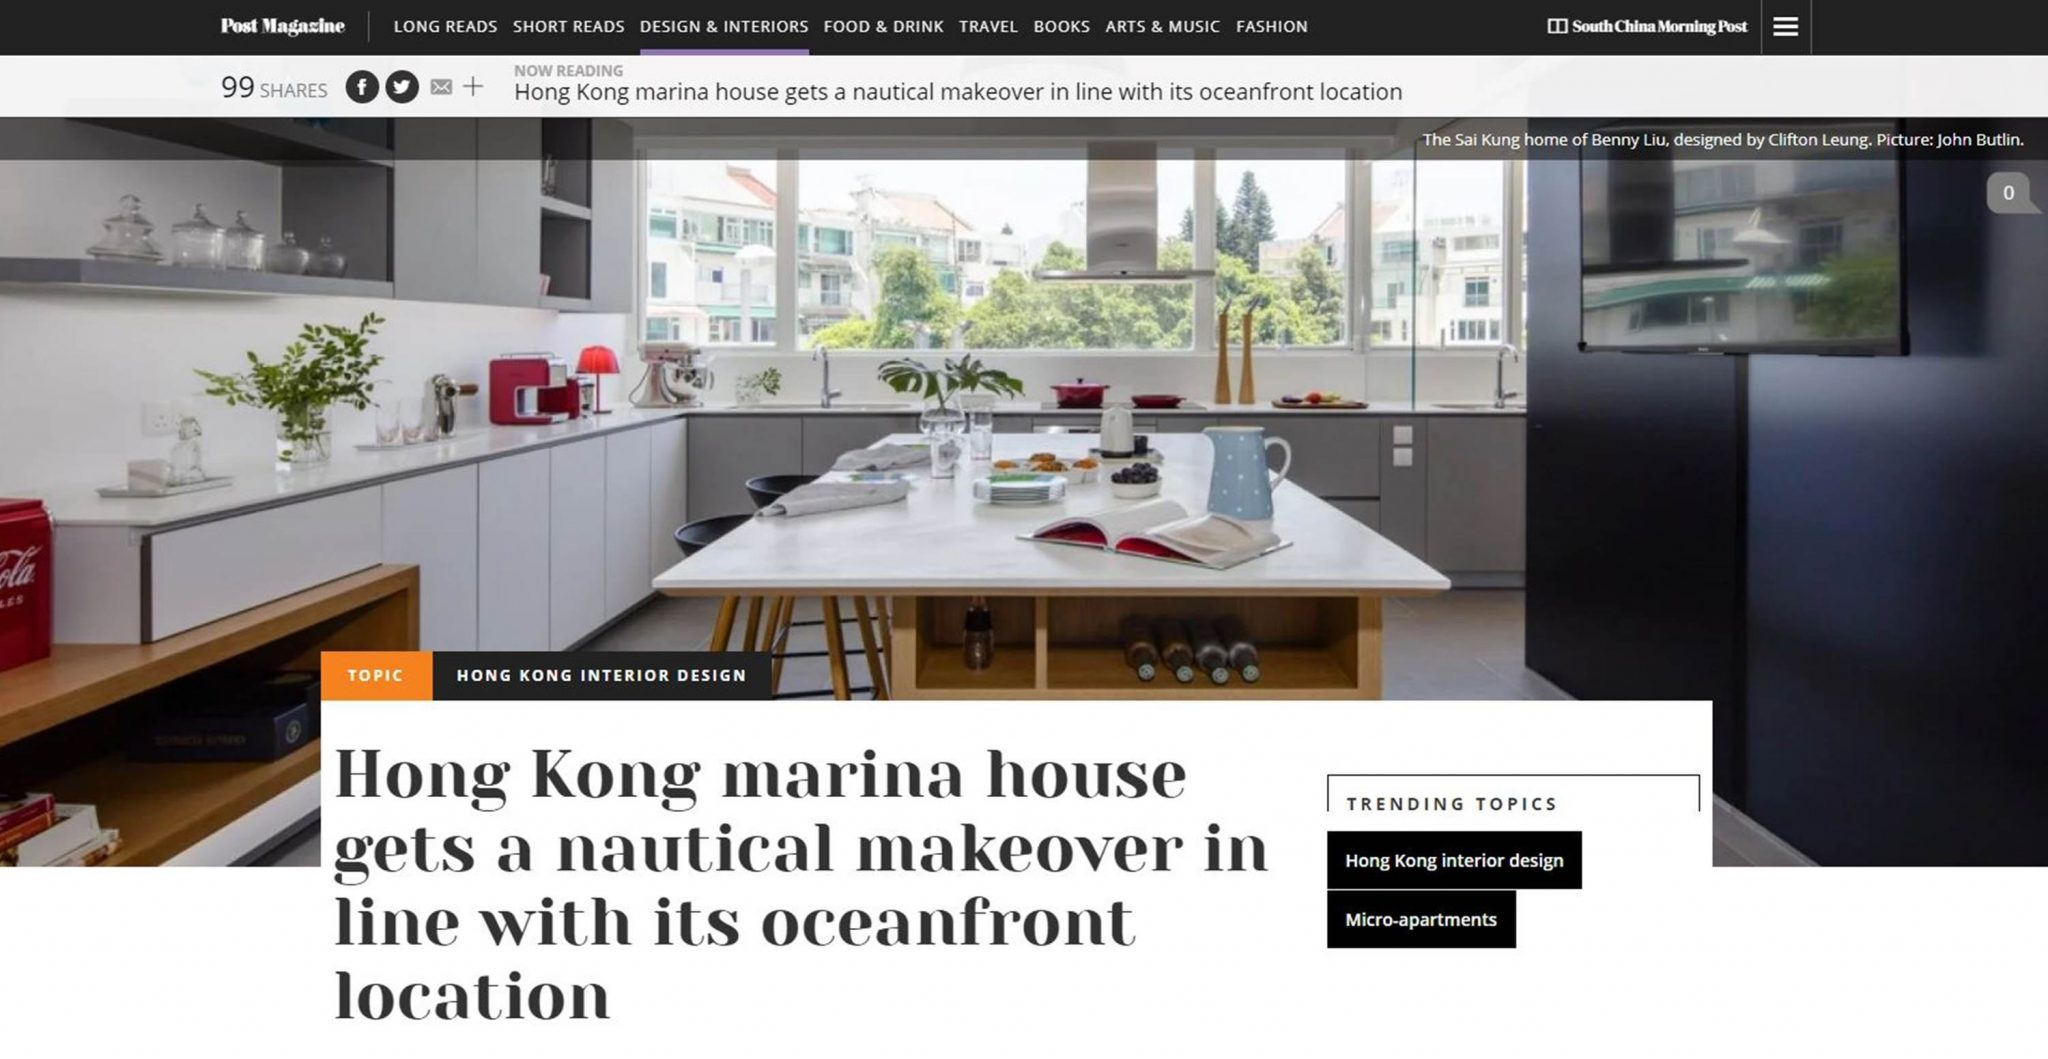 Marina House | SCMP Post Magazine | Nov 2018